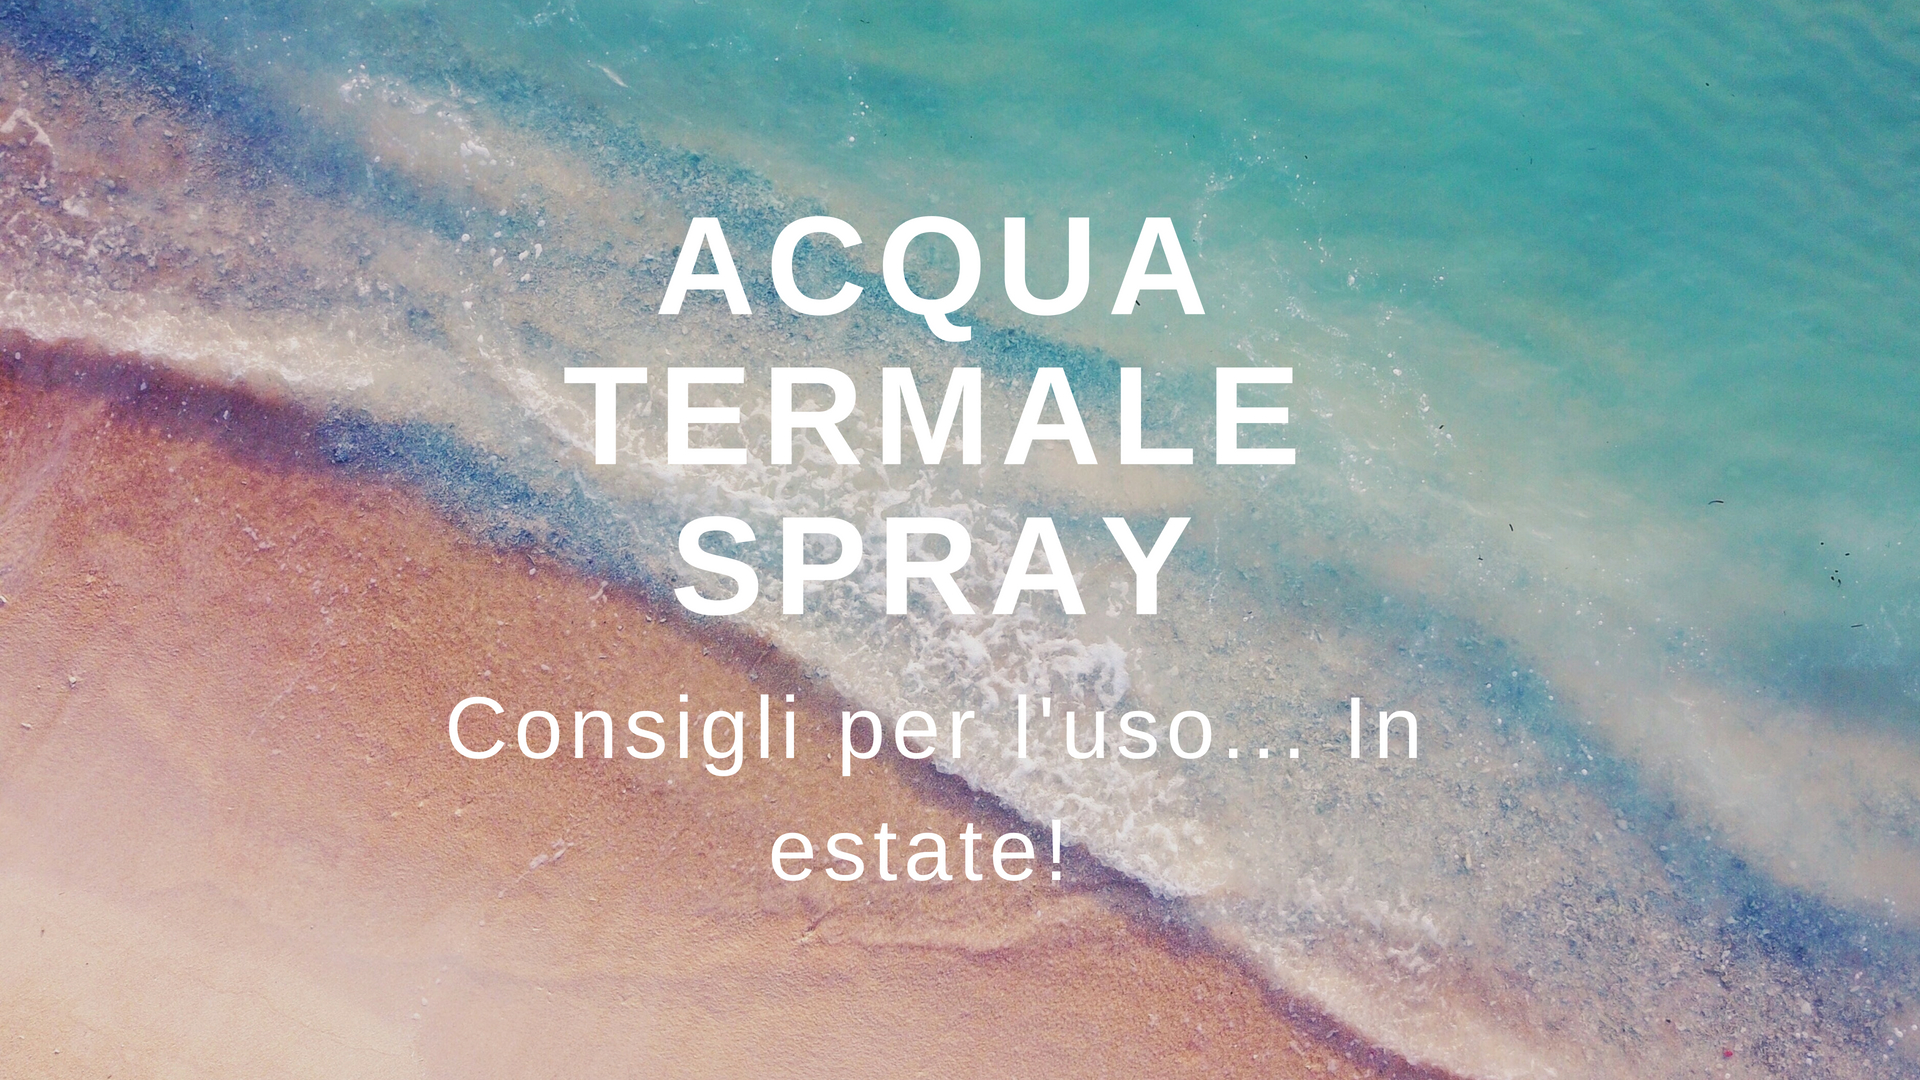 Acqua termaòe spray di Tabiano (Ph. by Alexey Marchenko on Unsplash)